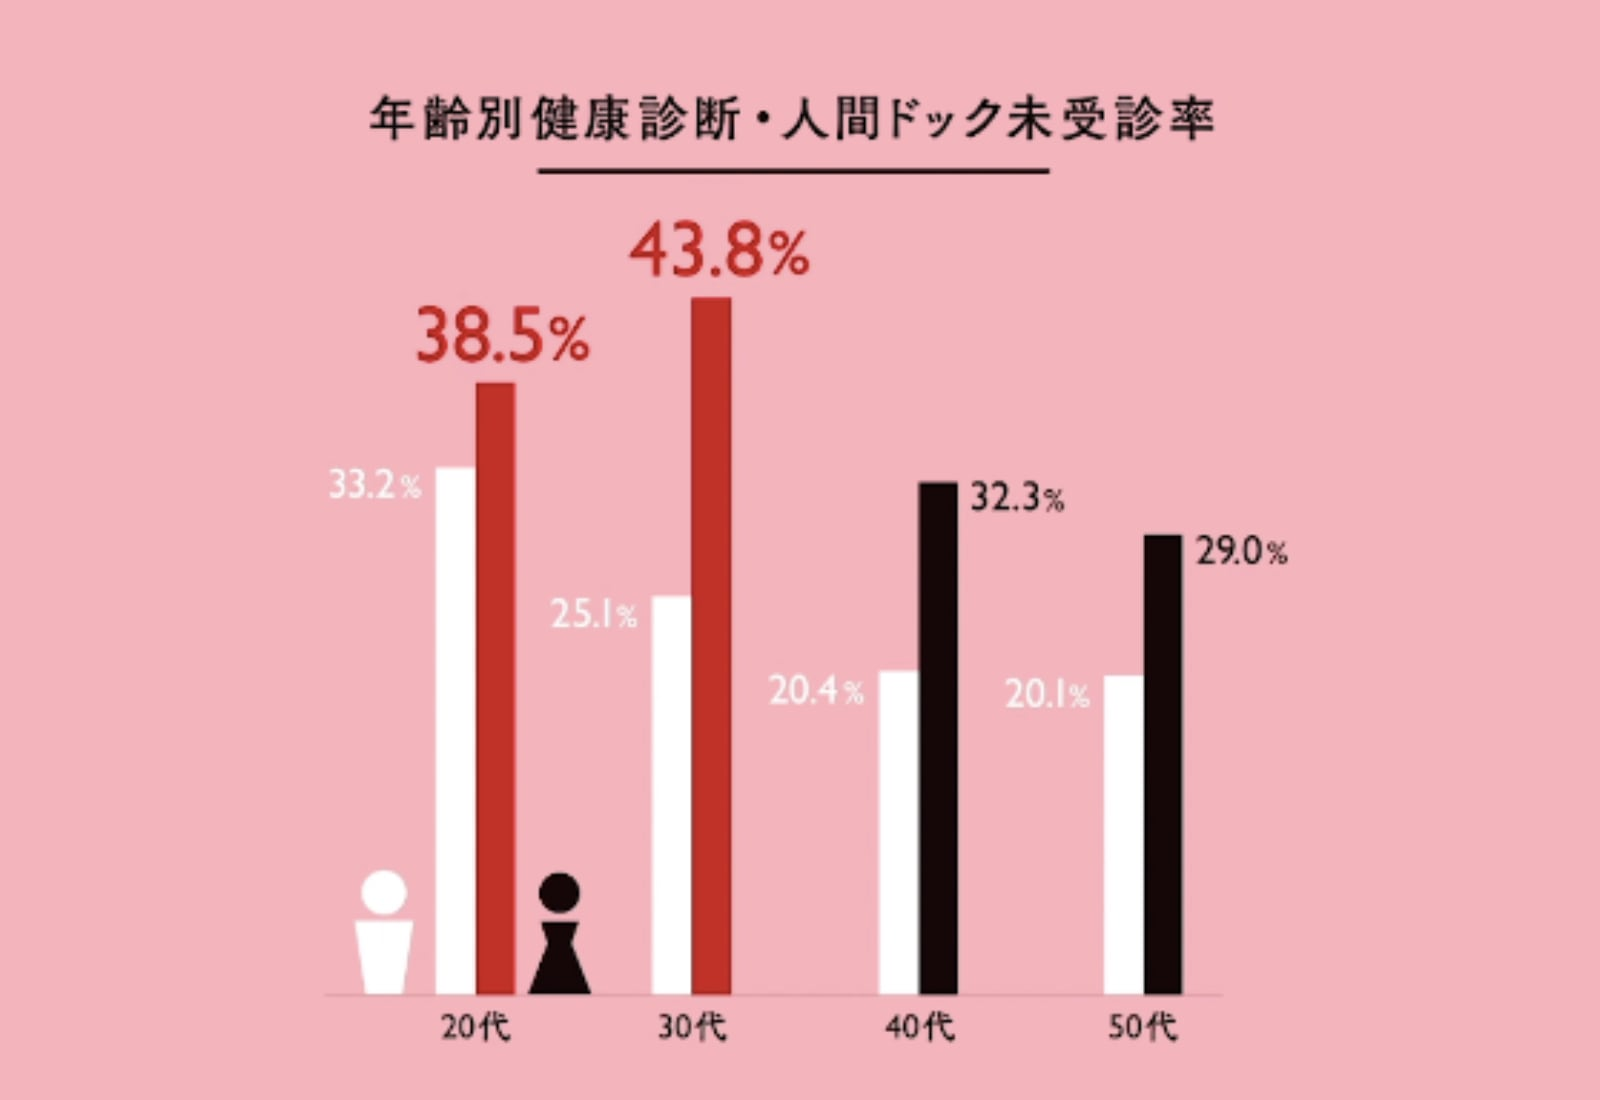 Ladyknows Fes 2019 - Health Exam Report on Women